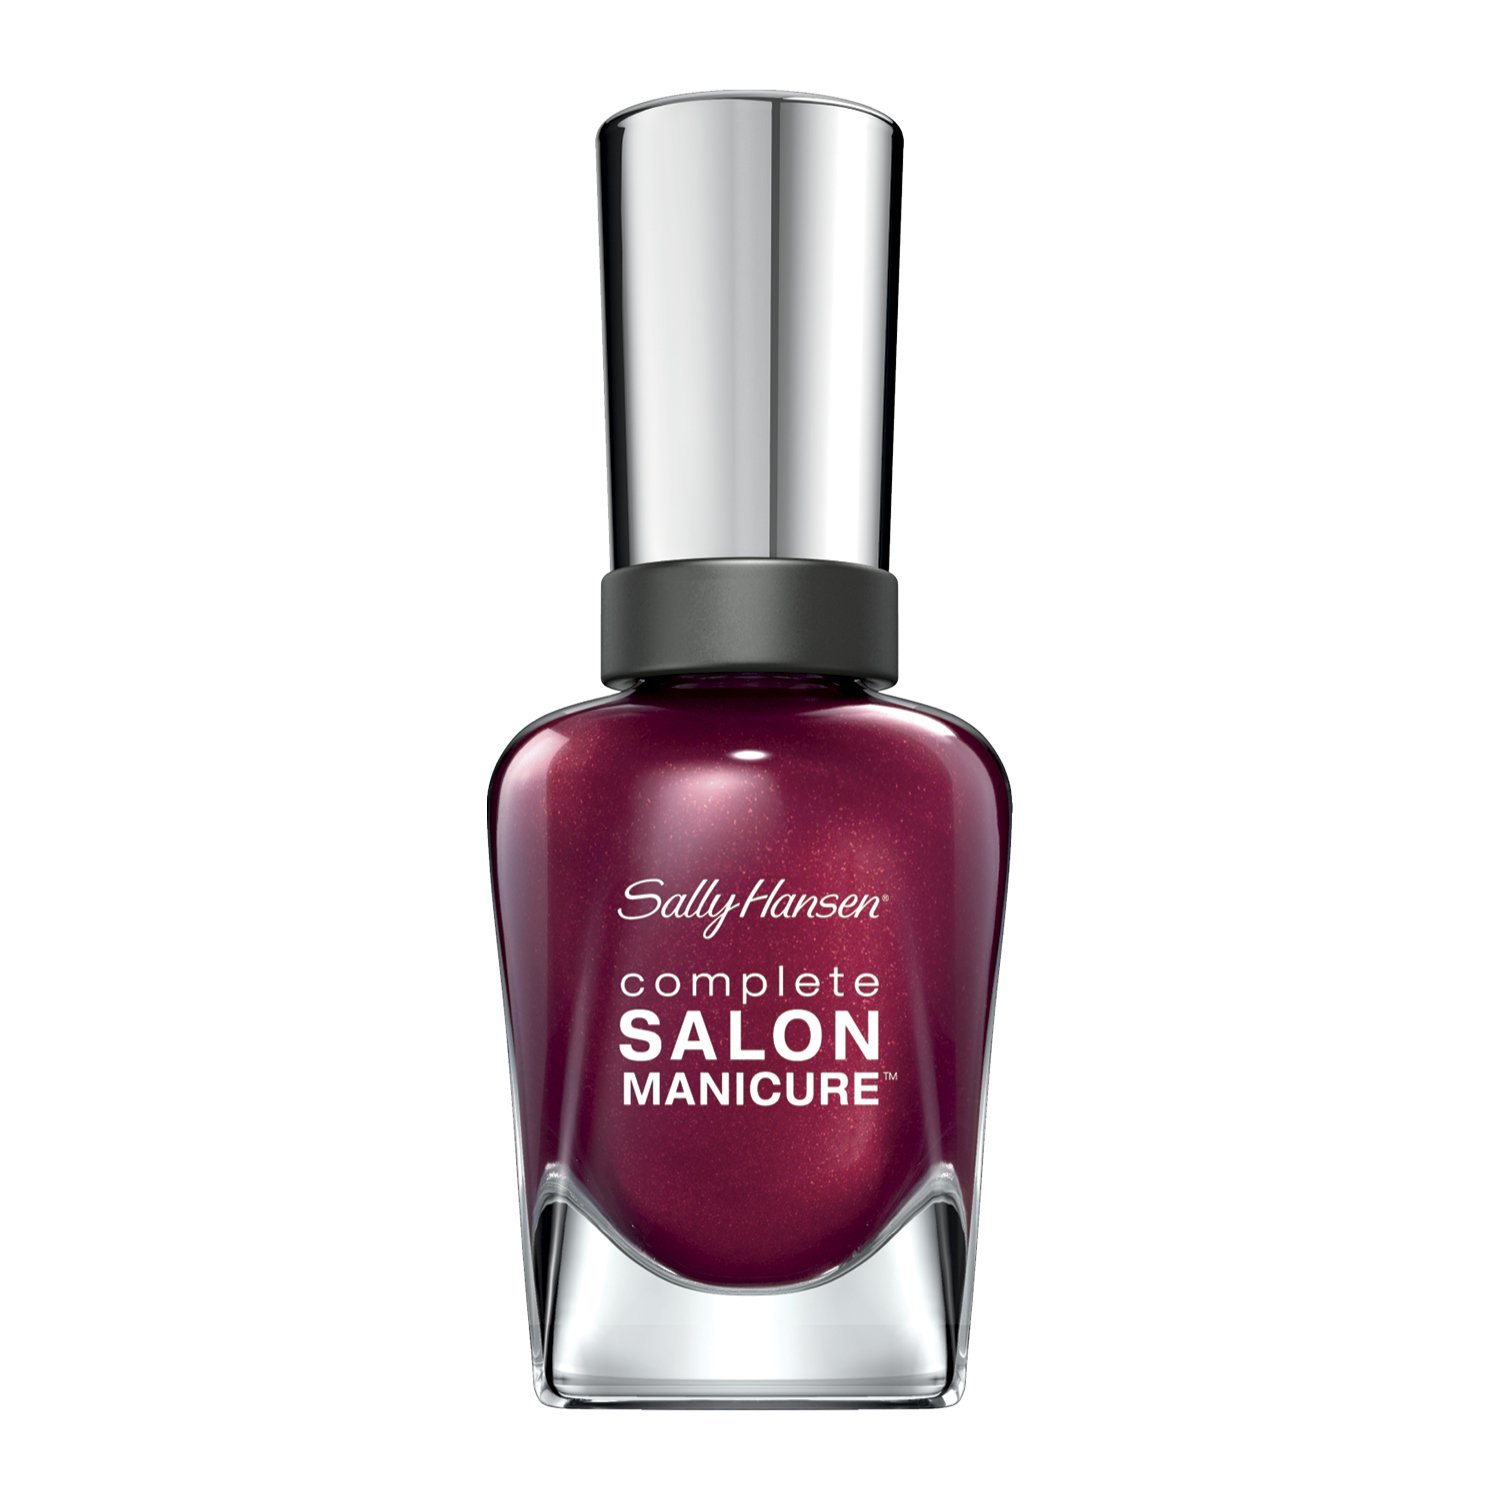 Sally Hansen Complete Salon Manicure Nail Polish, Wine Not 0.5 Ounce Long-Lasting Nail Polish with Gel Shine and Nourishing Care